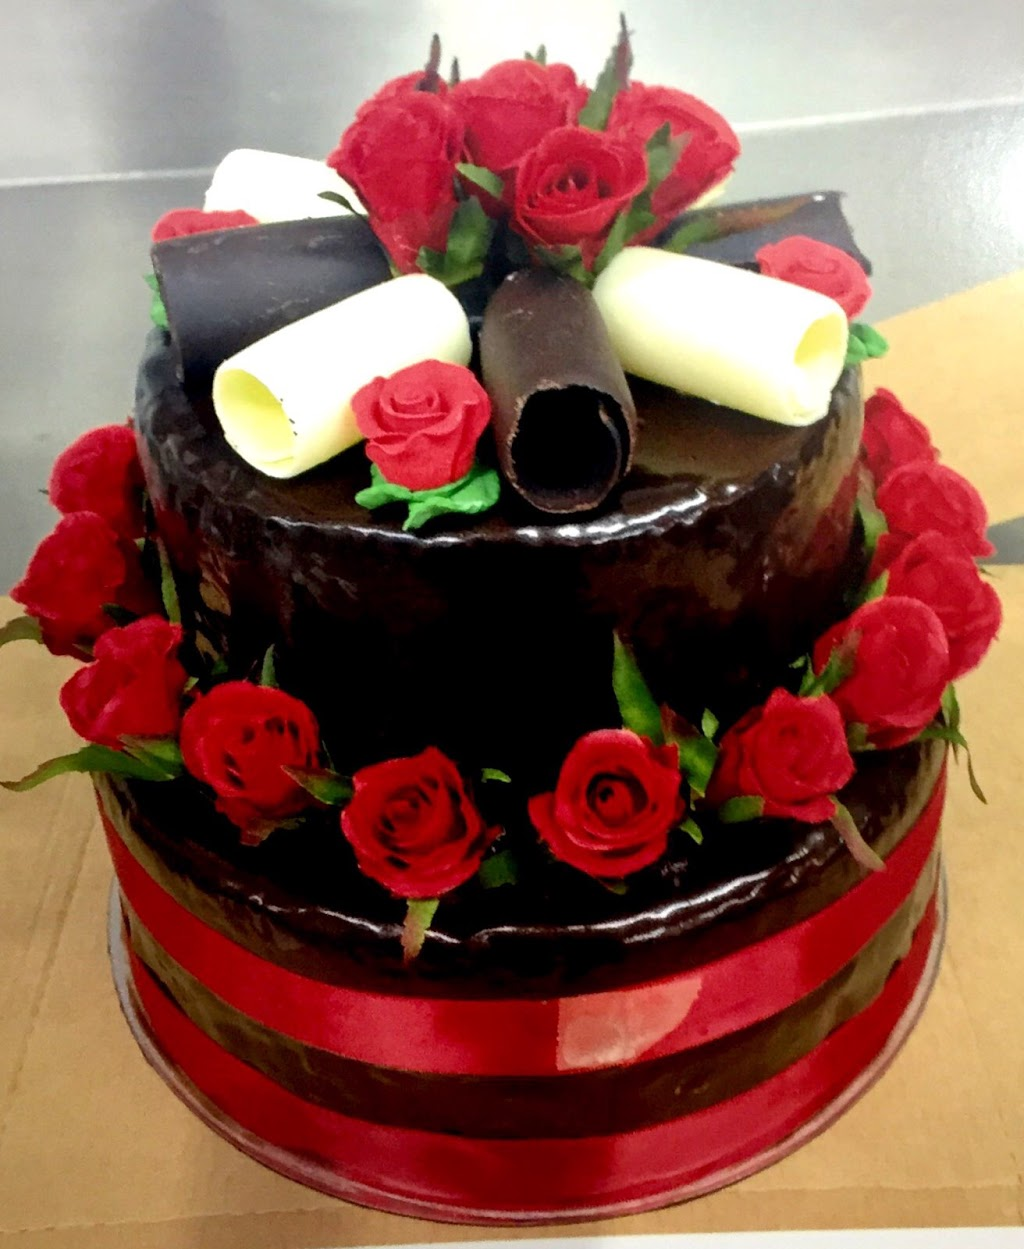 The Cake Palace Kippax | cafe | 104 Hardwick Cres, Holt ACT 2615, Australia | 0262785009 OR +61 2 6278 5009